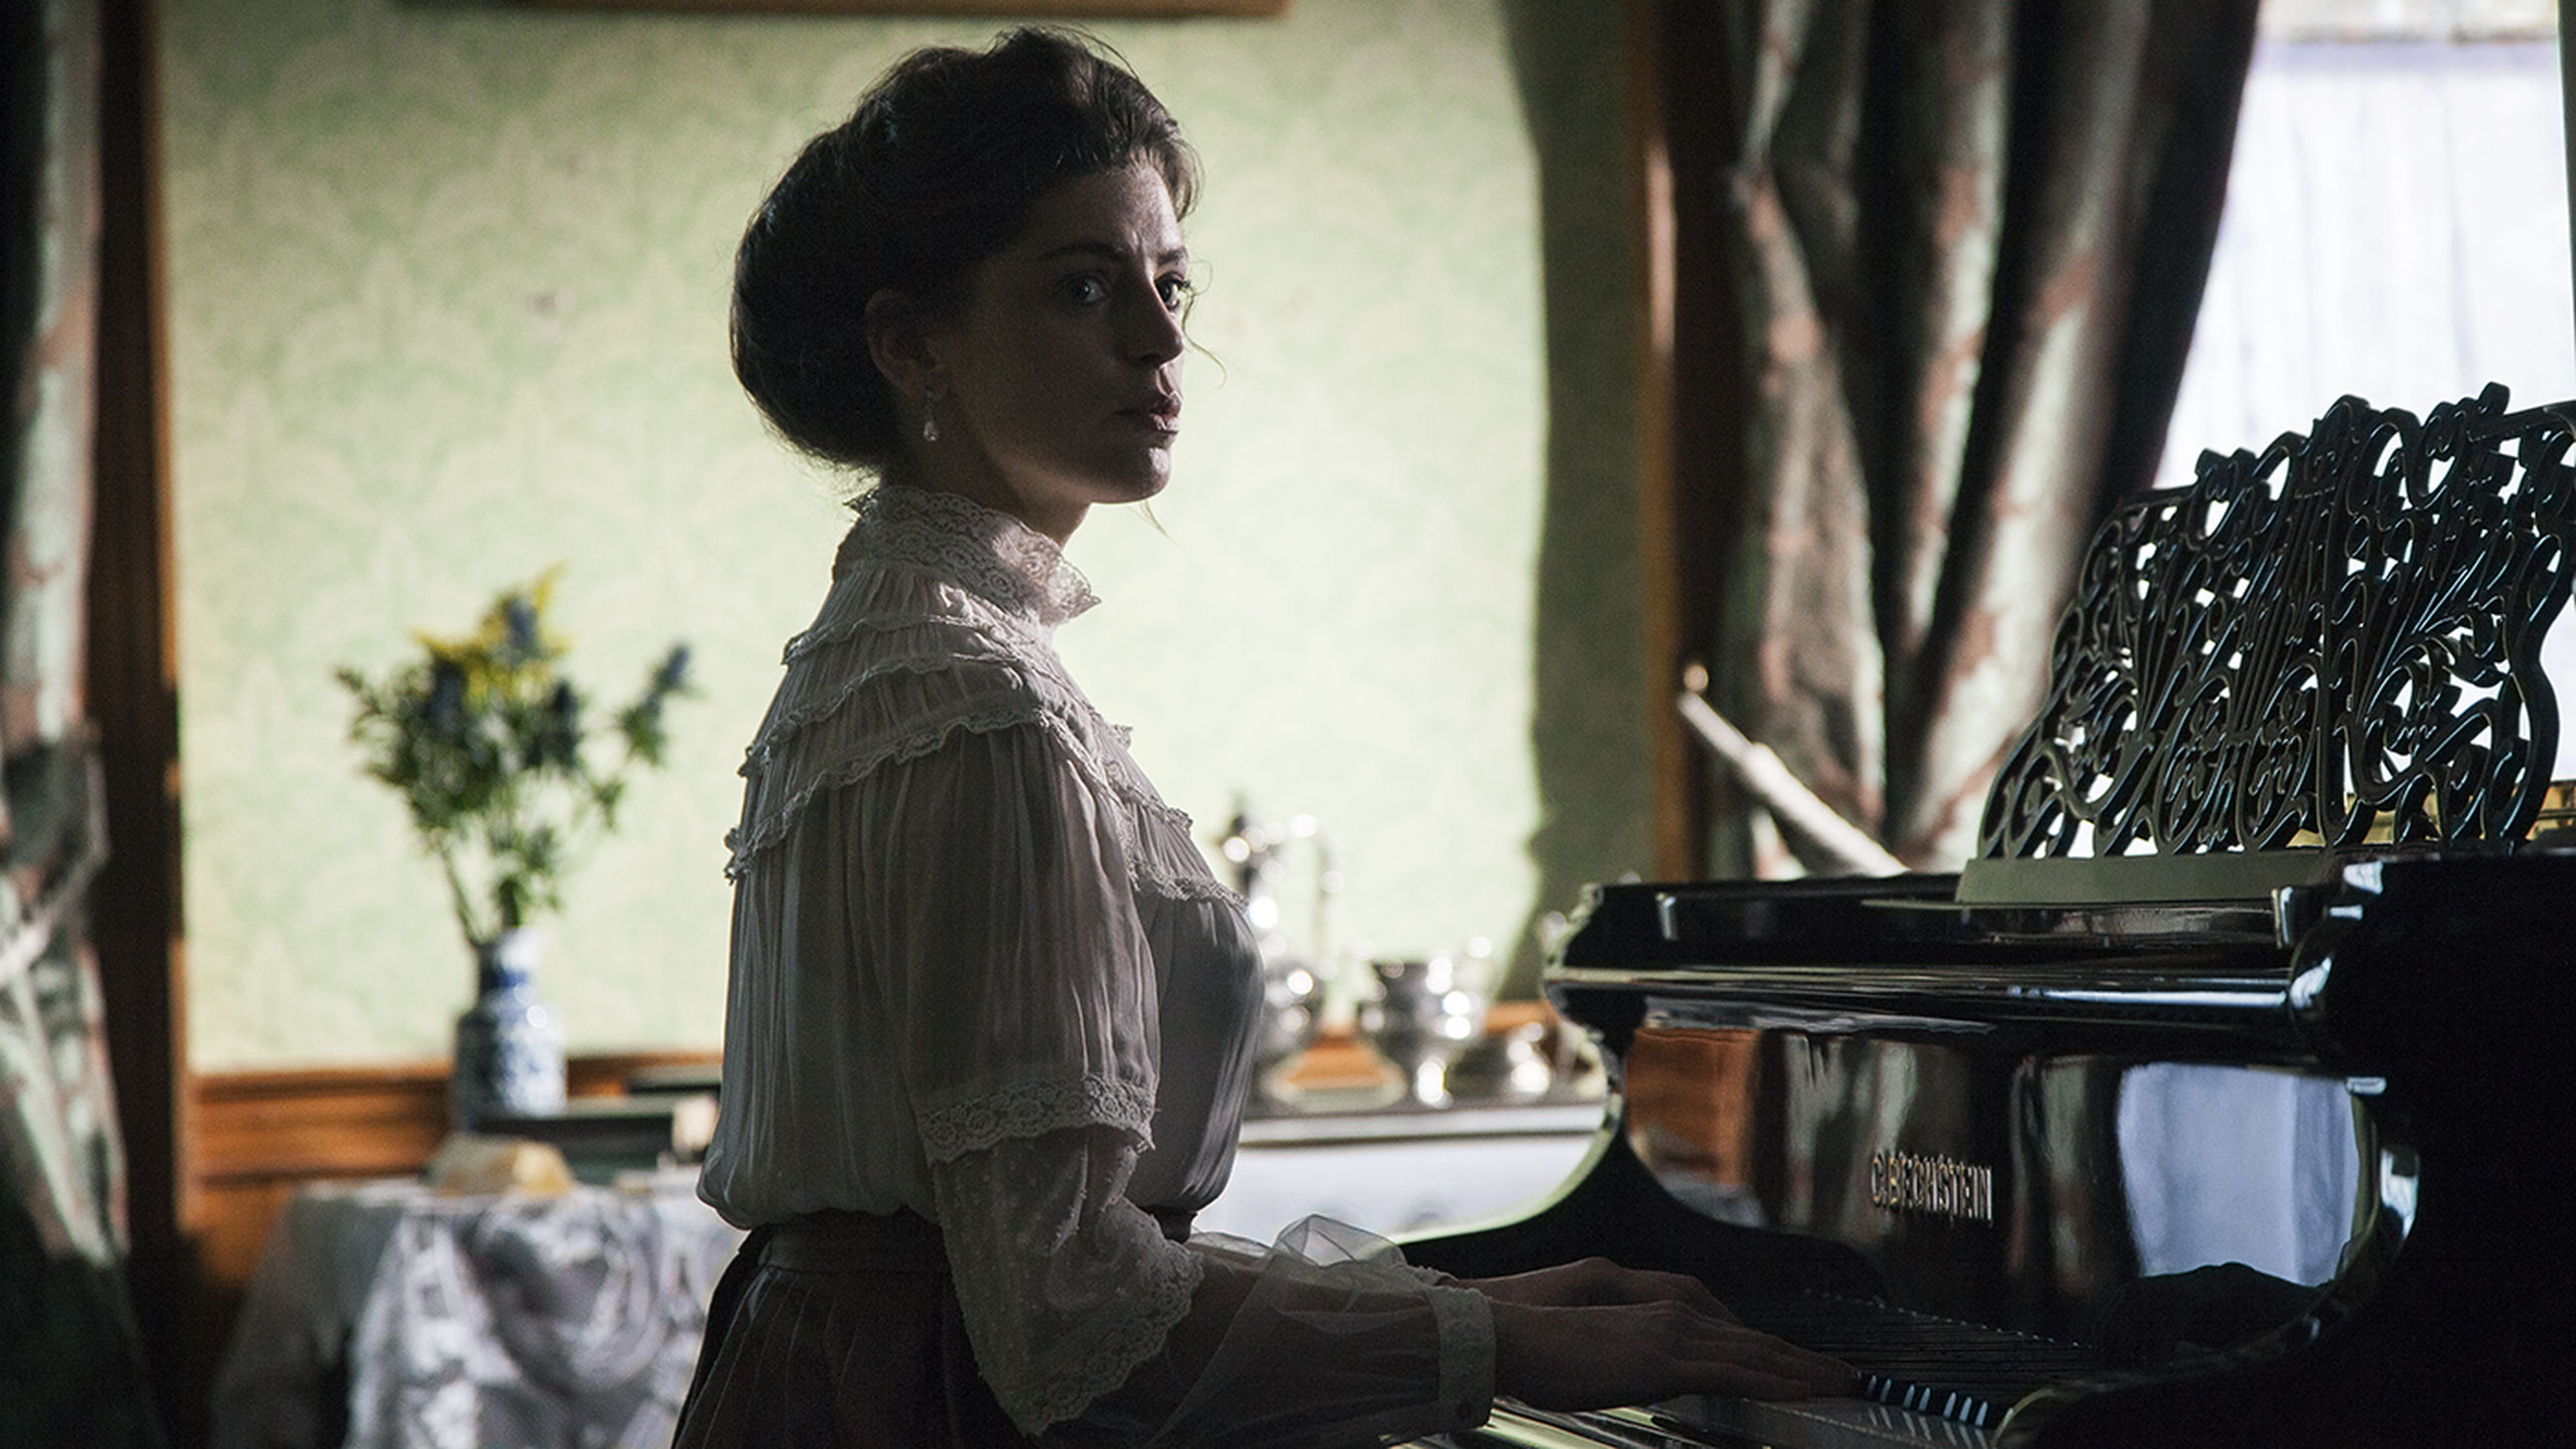 music, piano, arts culture and entertainment, one person, old-fashioned, pianist, one woman only, only women, adults only, indoors, performance, musical instrument, people, musician, adult, classical music, period costume, day